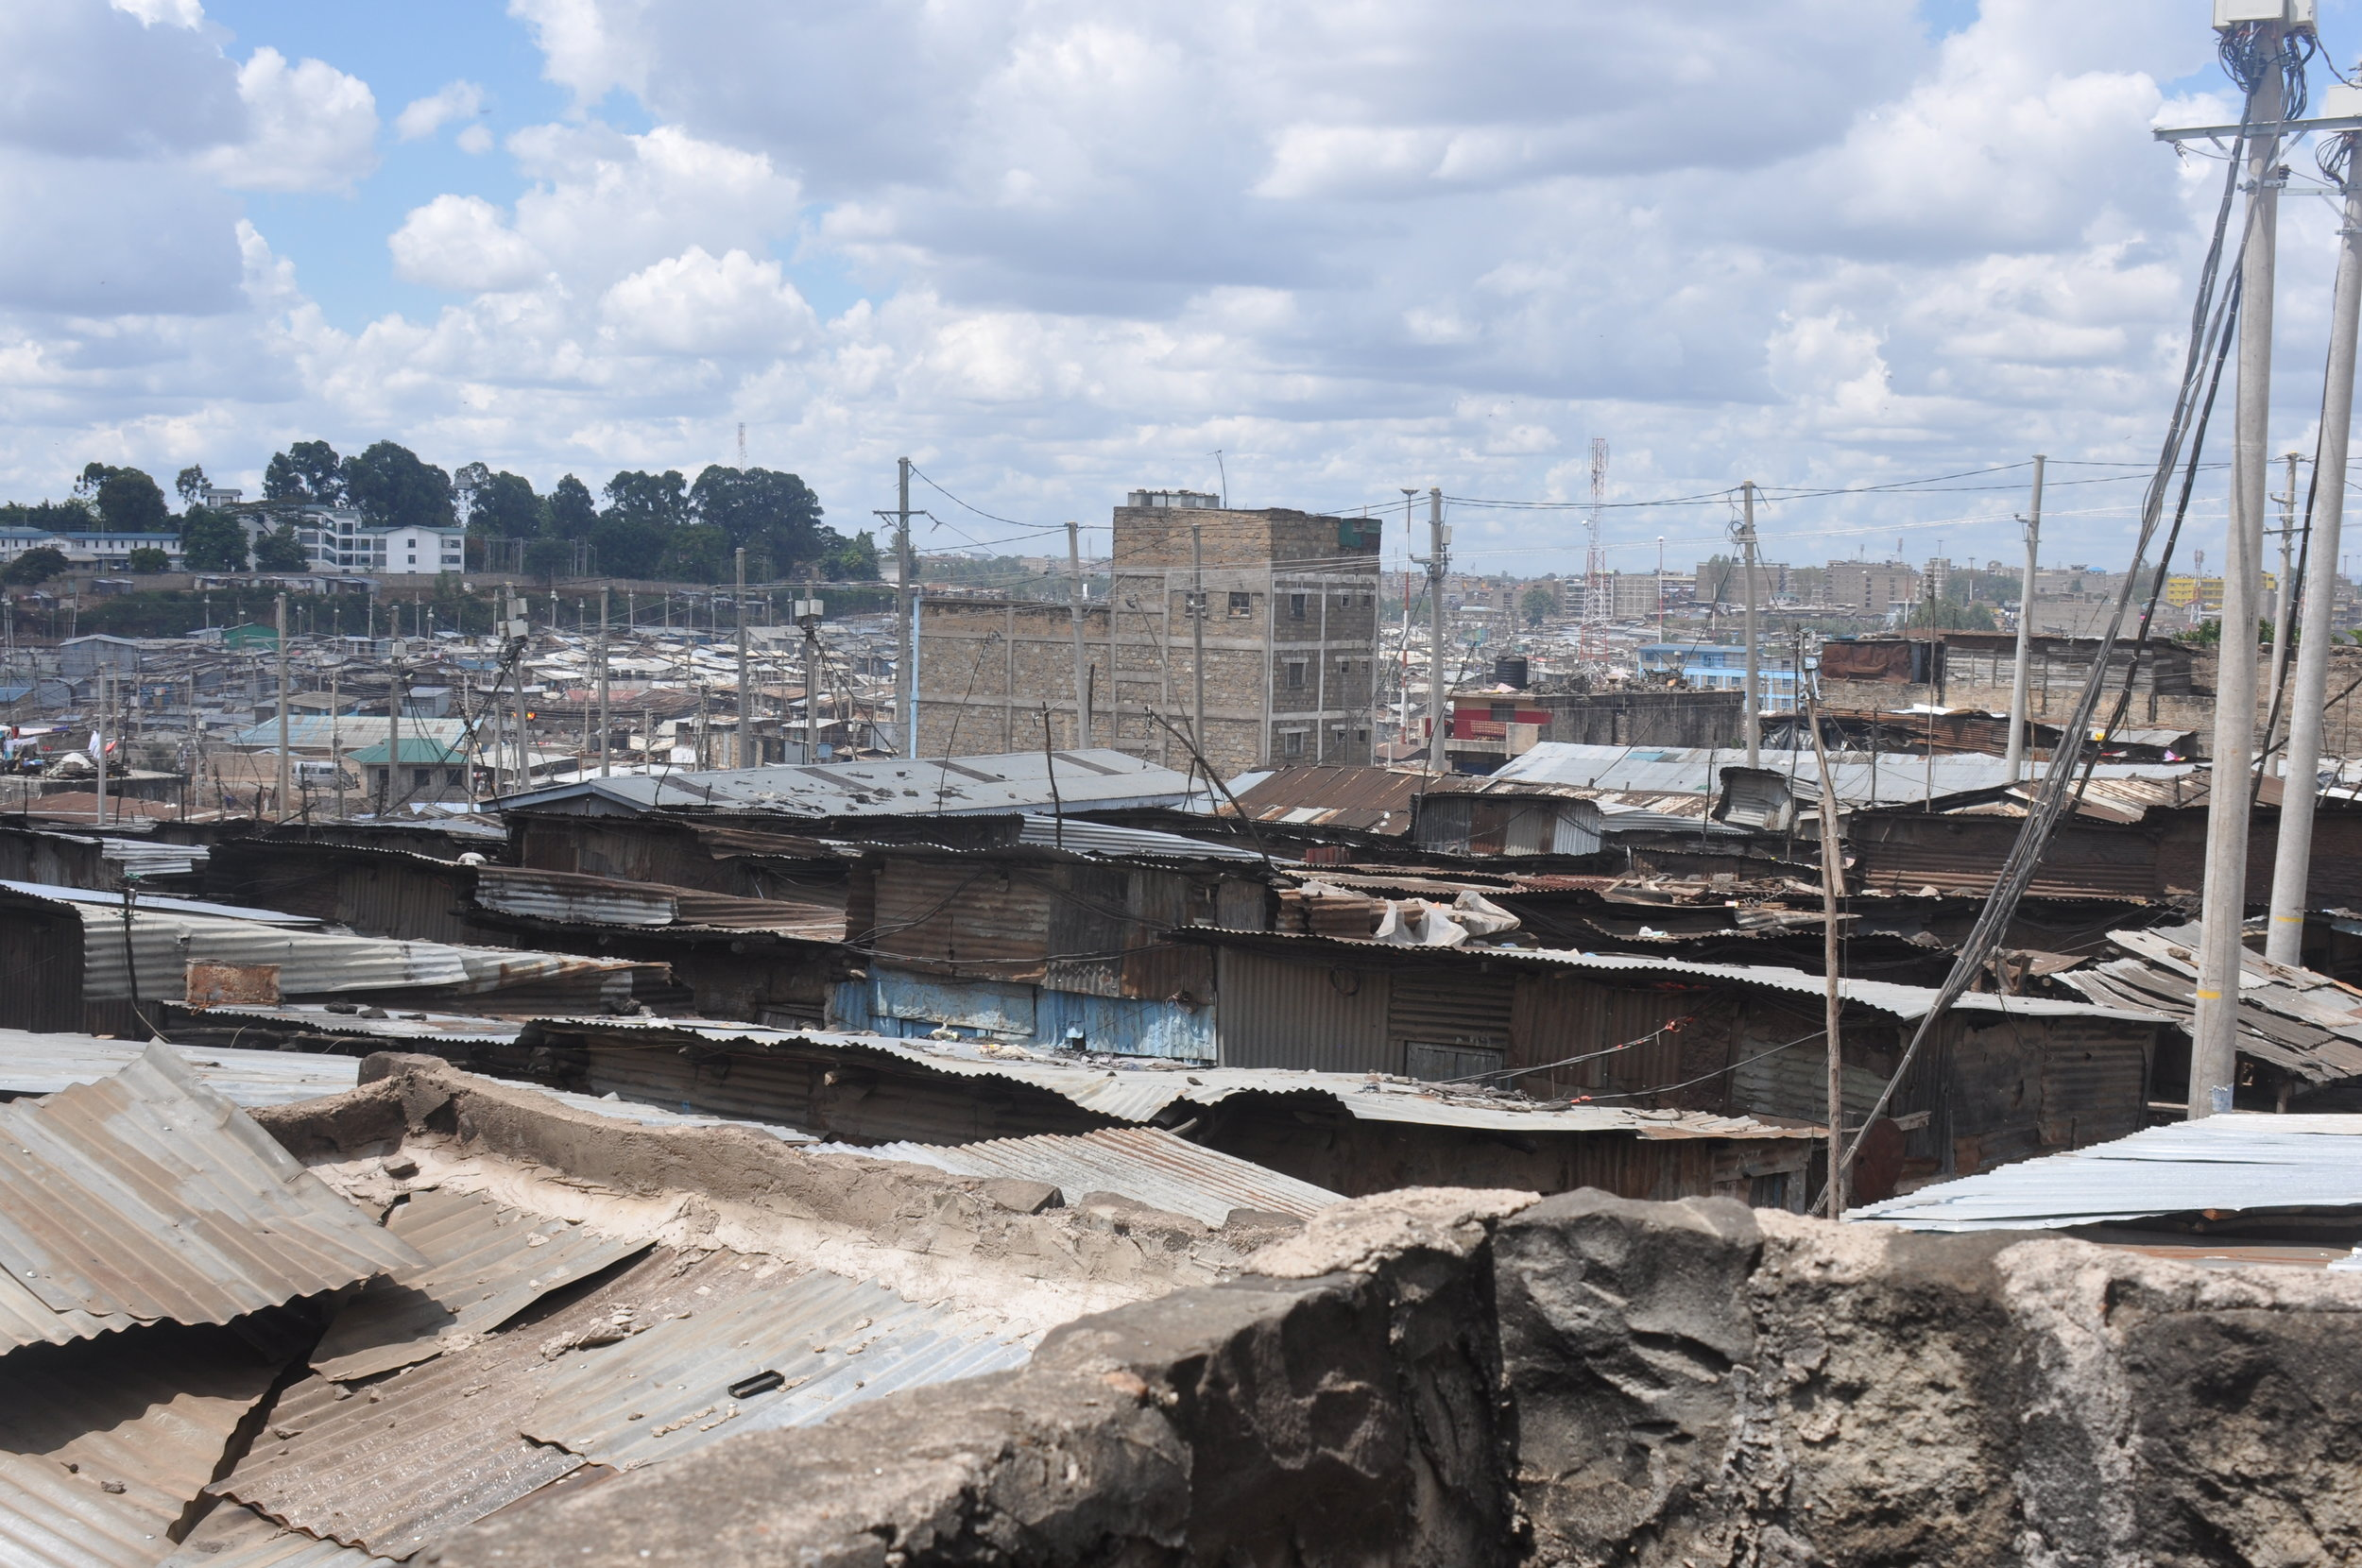 This is Mathare, the giant slum in Nairobi,which is where the students of Mamma Africa come from.